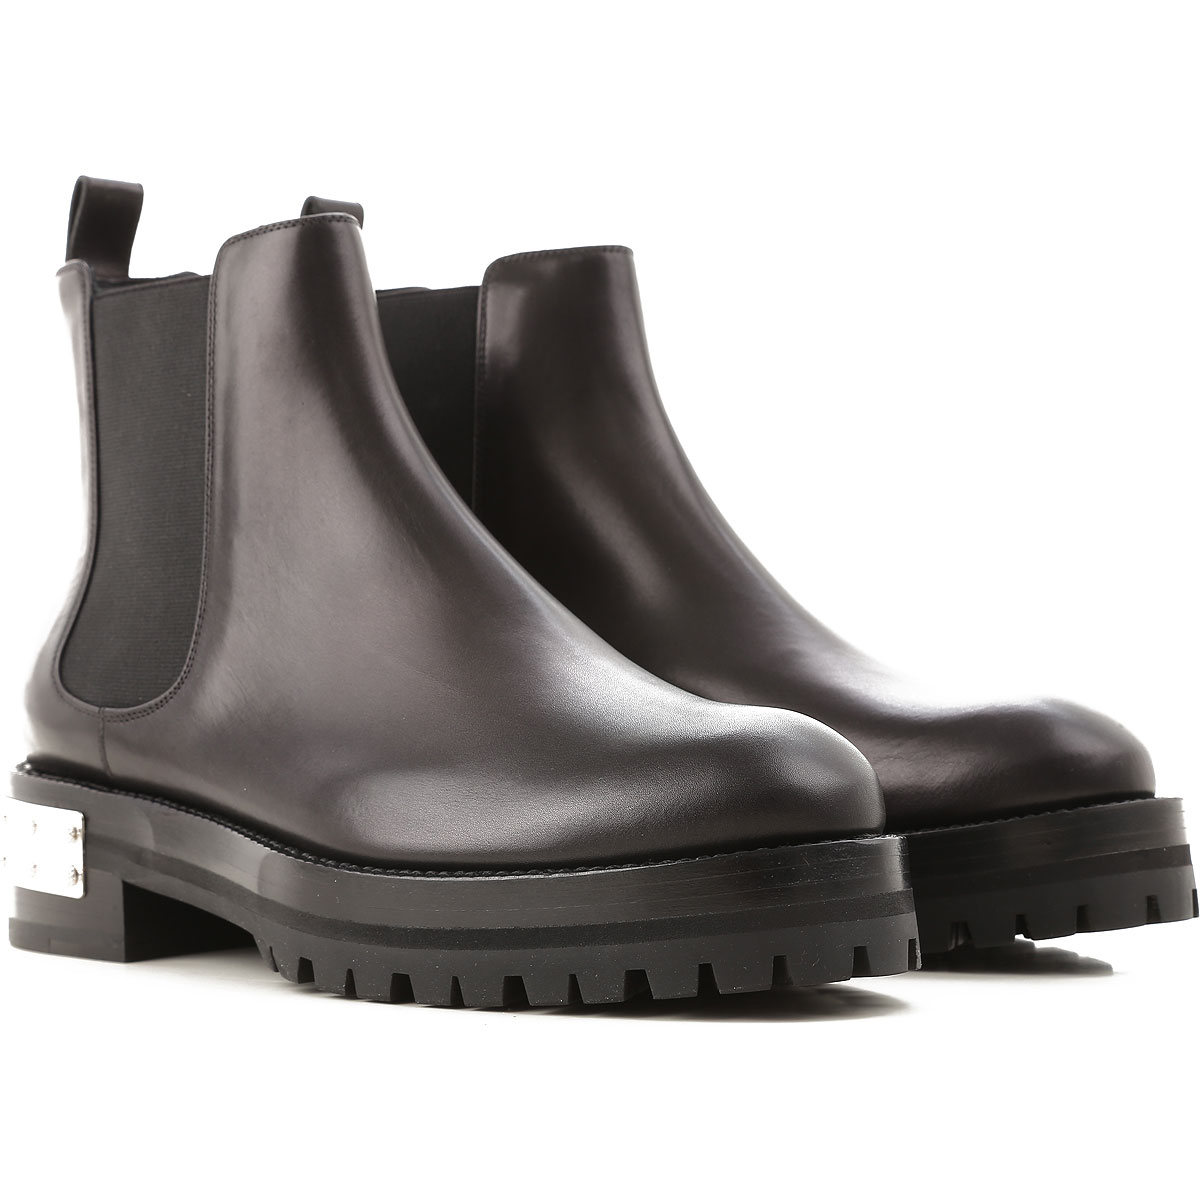 Image of Alexander McQueen Chelsea Boots for Women, Black, Leather, 2017, 10 11 5.5 6 7 8 8.5